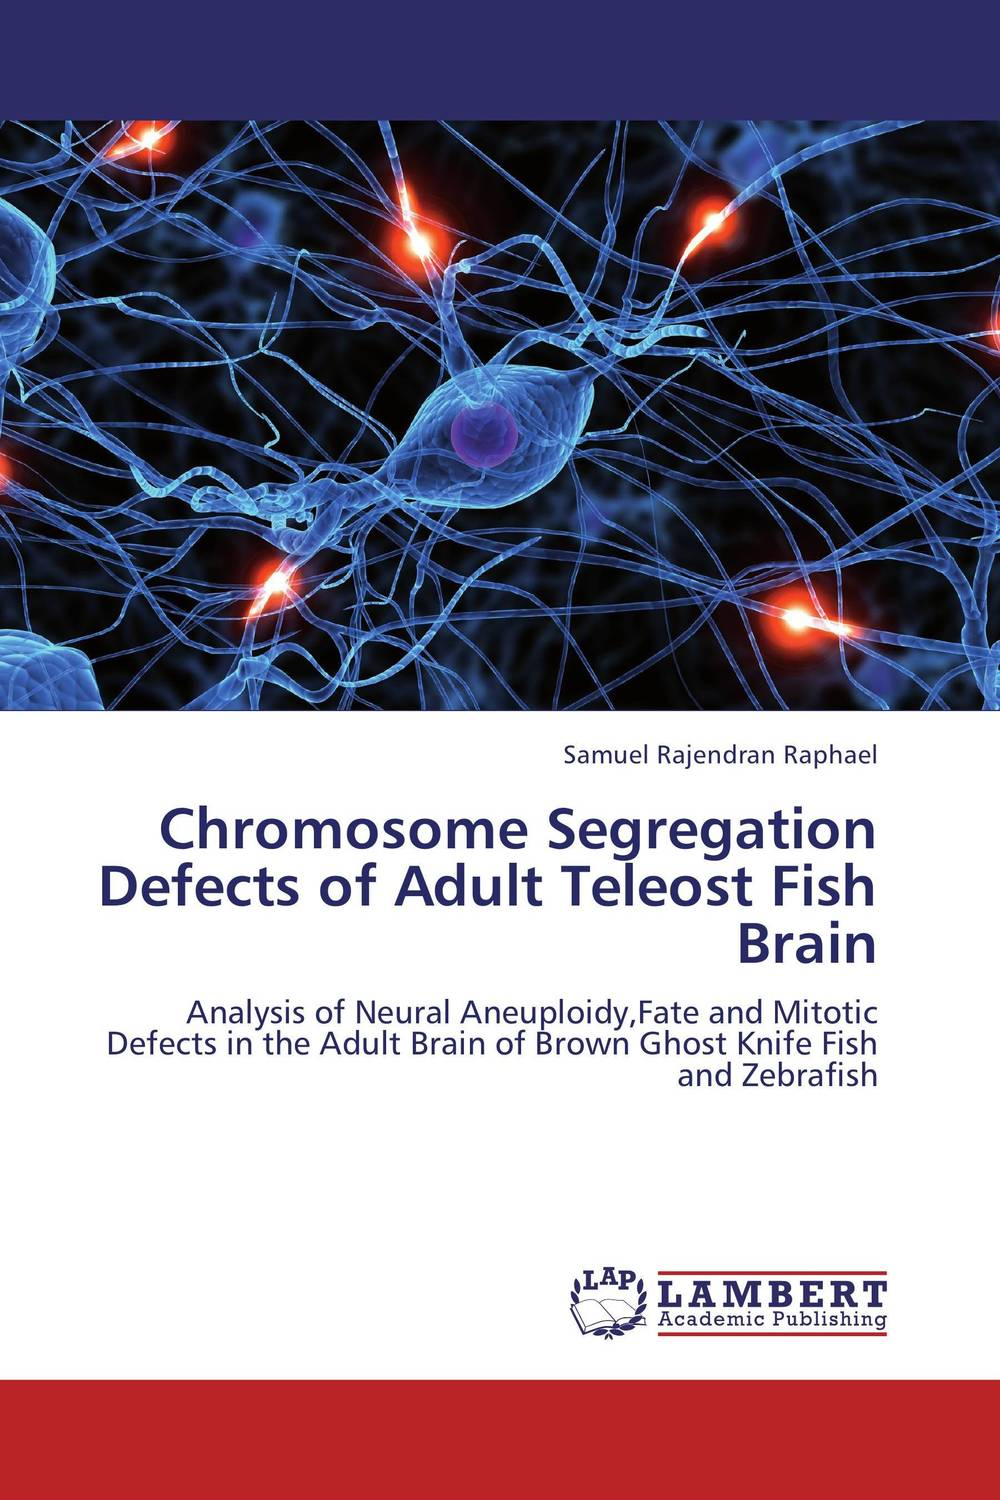 Chromosome Segregation Defects of Adult Teleost Fish Brain venkatachalam deepa parvathi and maddaly ravi anti mitotic polyclonal antibodies for mitotic inhibition